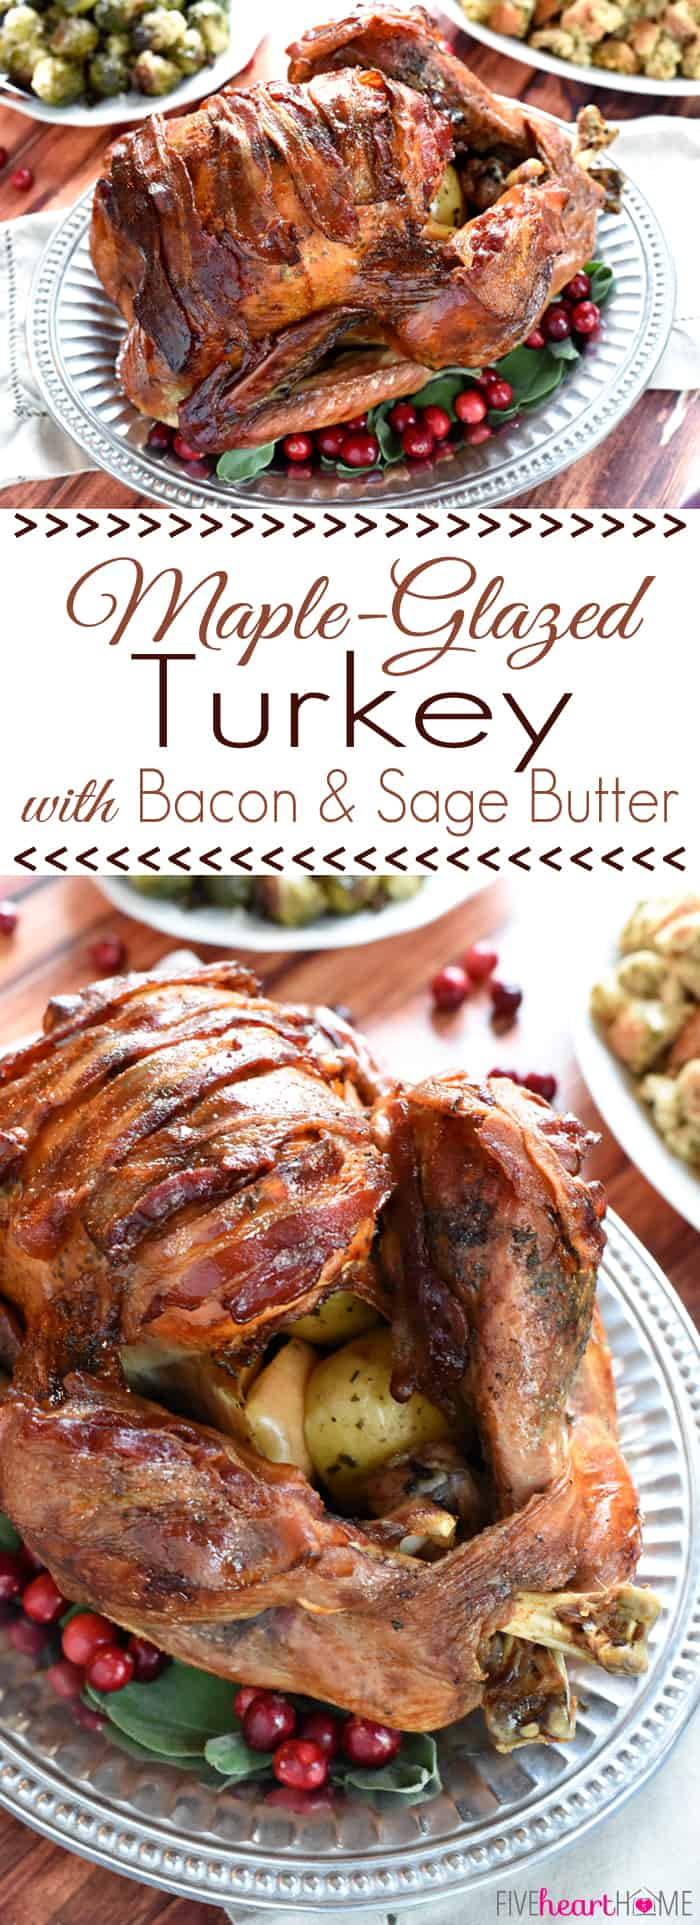 27 Delicious Turkey Recipes You Need to Try This Thanksgiving Season 19 #cookymom